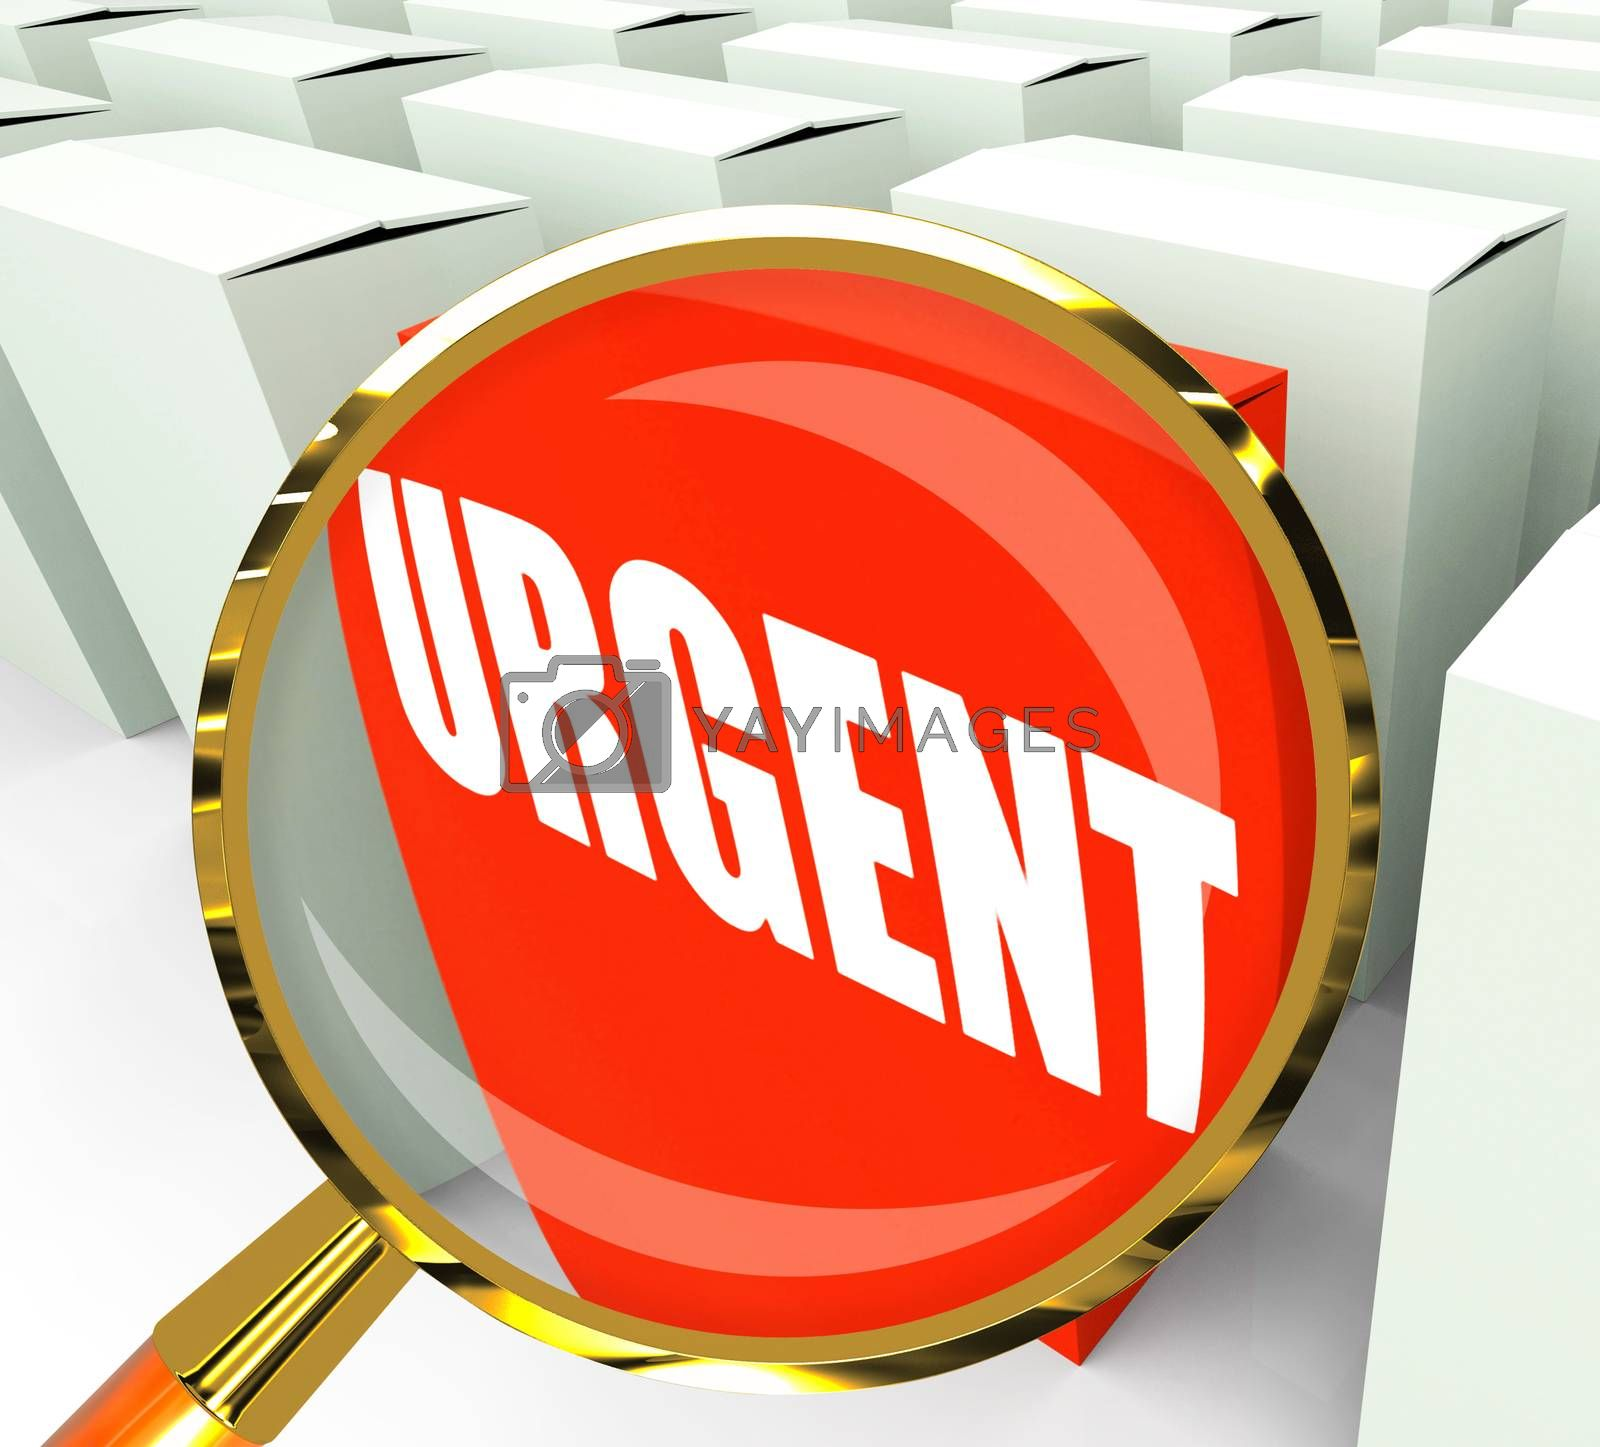 Urgent Packet Refers to Urgency Priority and Critical by stuartmiles